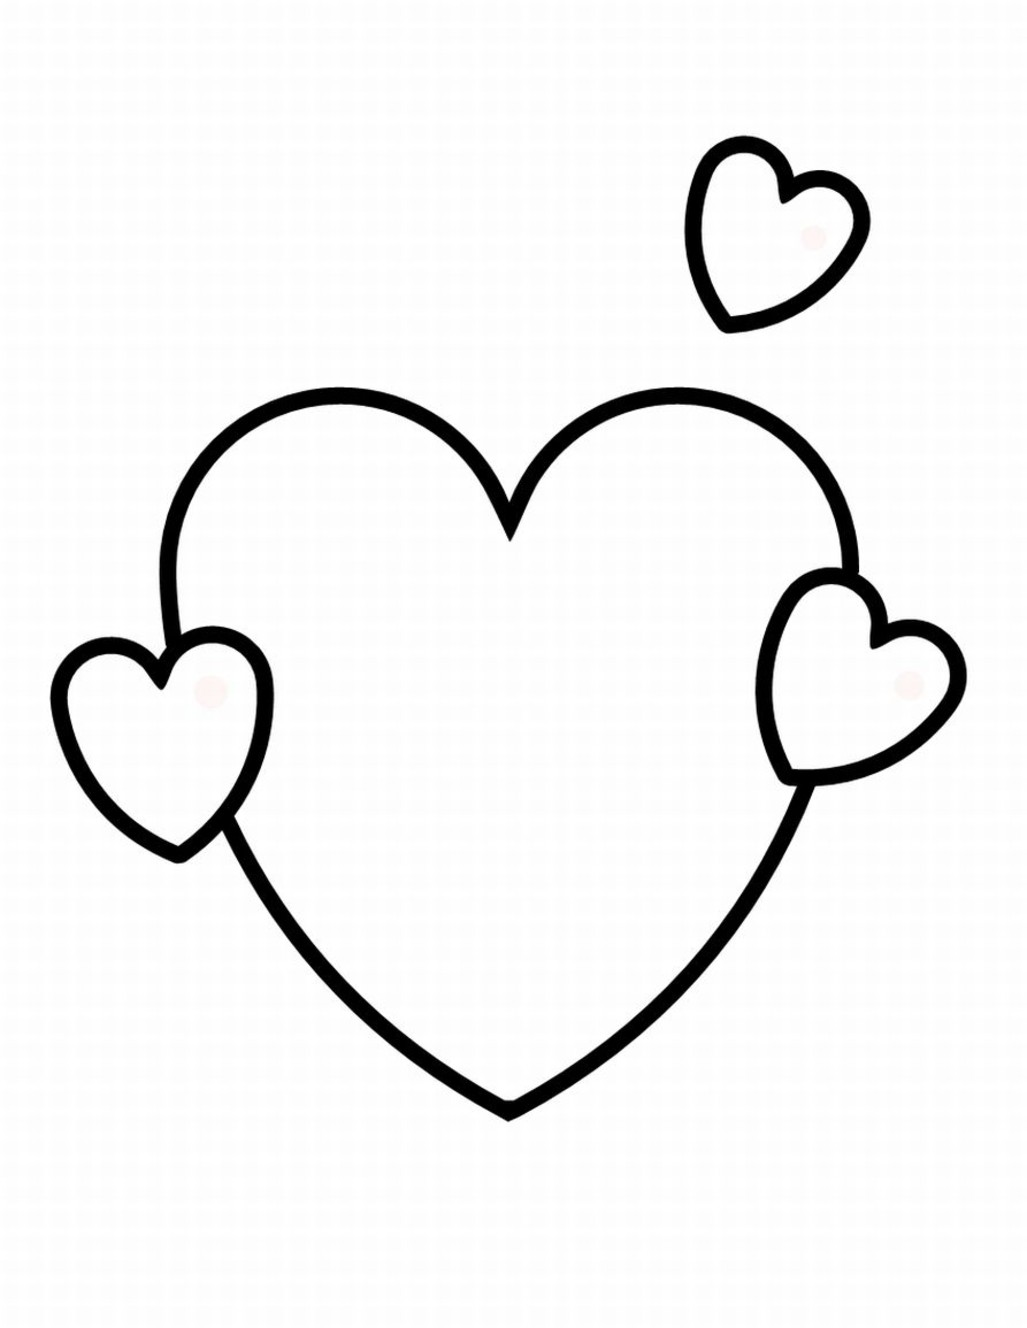 coloring book pictures of hearts valentine heart coloring pages best coloring pages for kids coloring book pictures of hearts